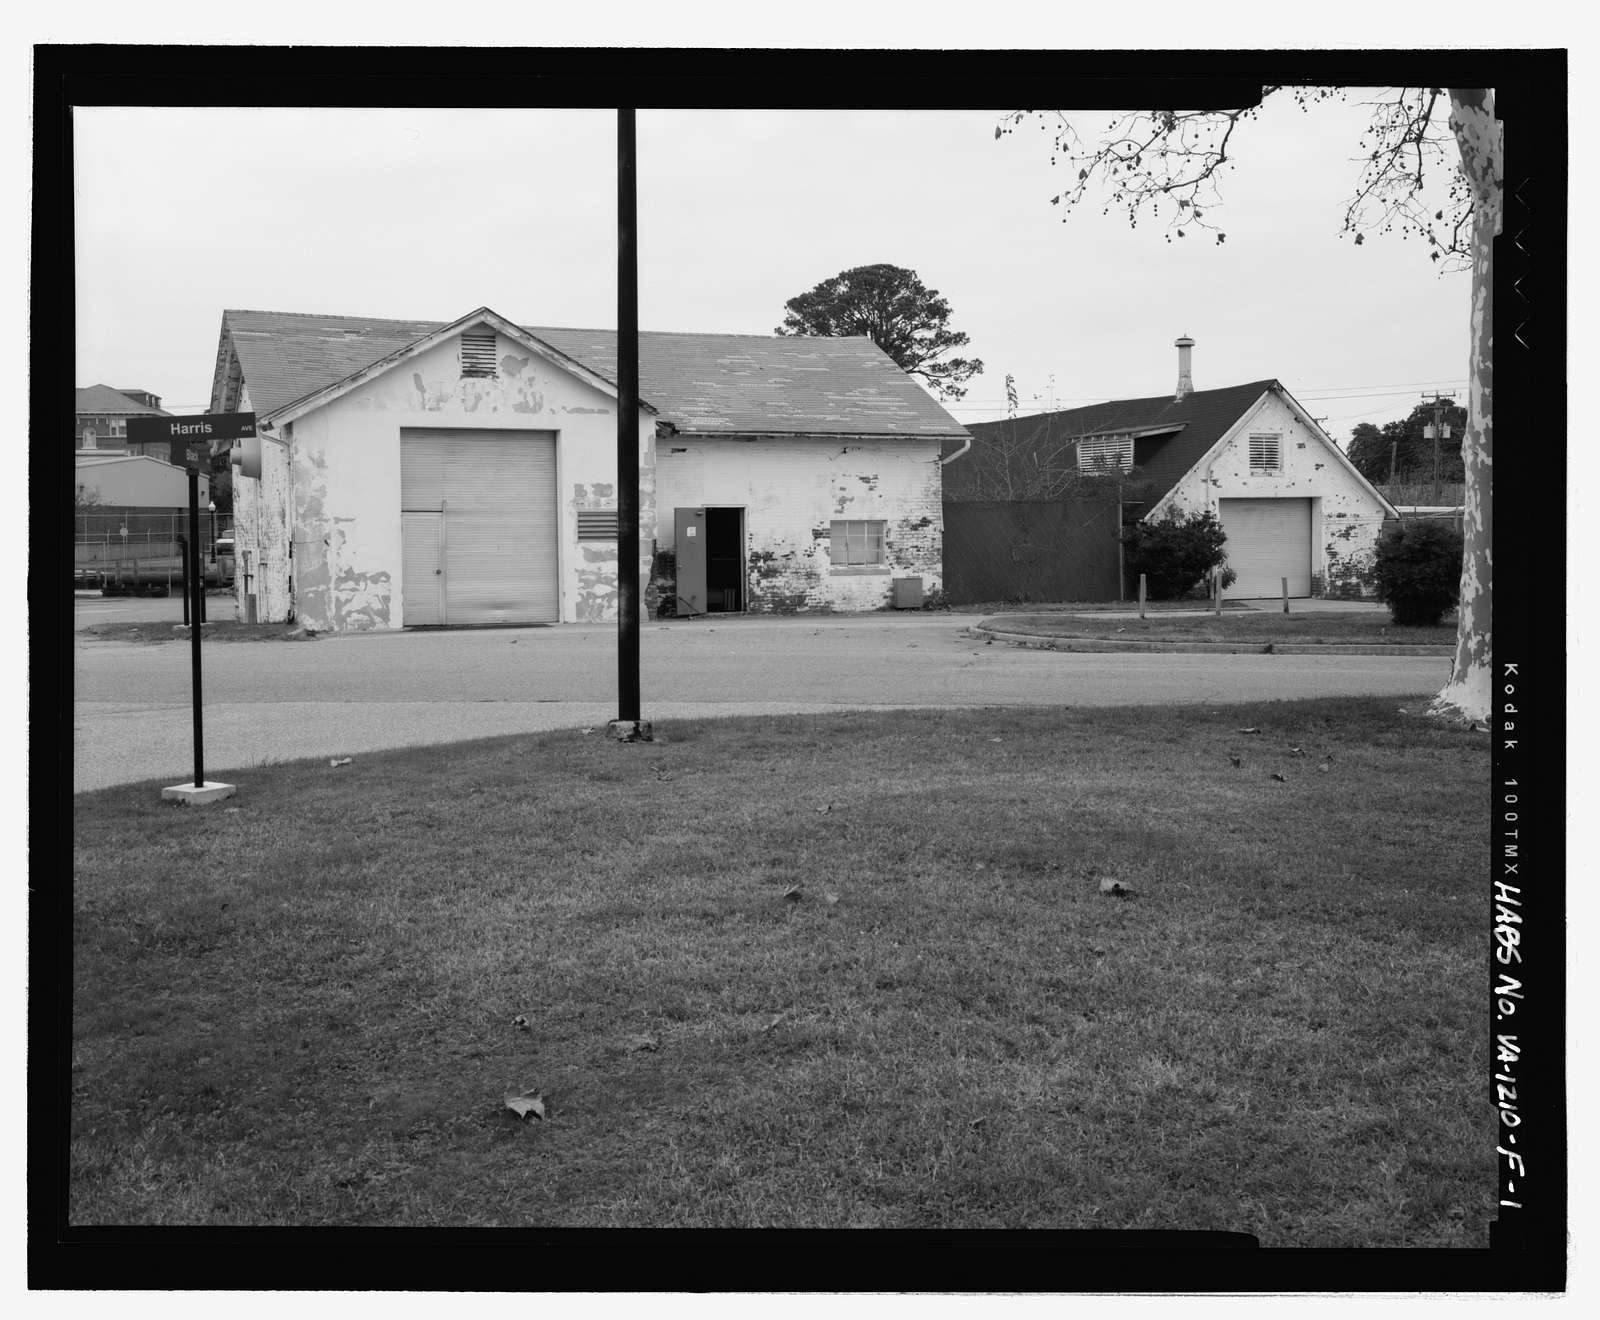 Southern Branch of the National Home for Disabled Volunteer Soldiers, Building 16, Harris Avenue at its intersection with Black Avenue and Woodfin Street, Hampton, Hampton, VA